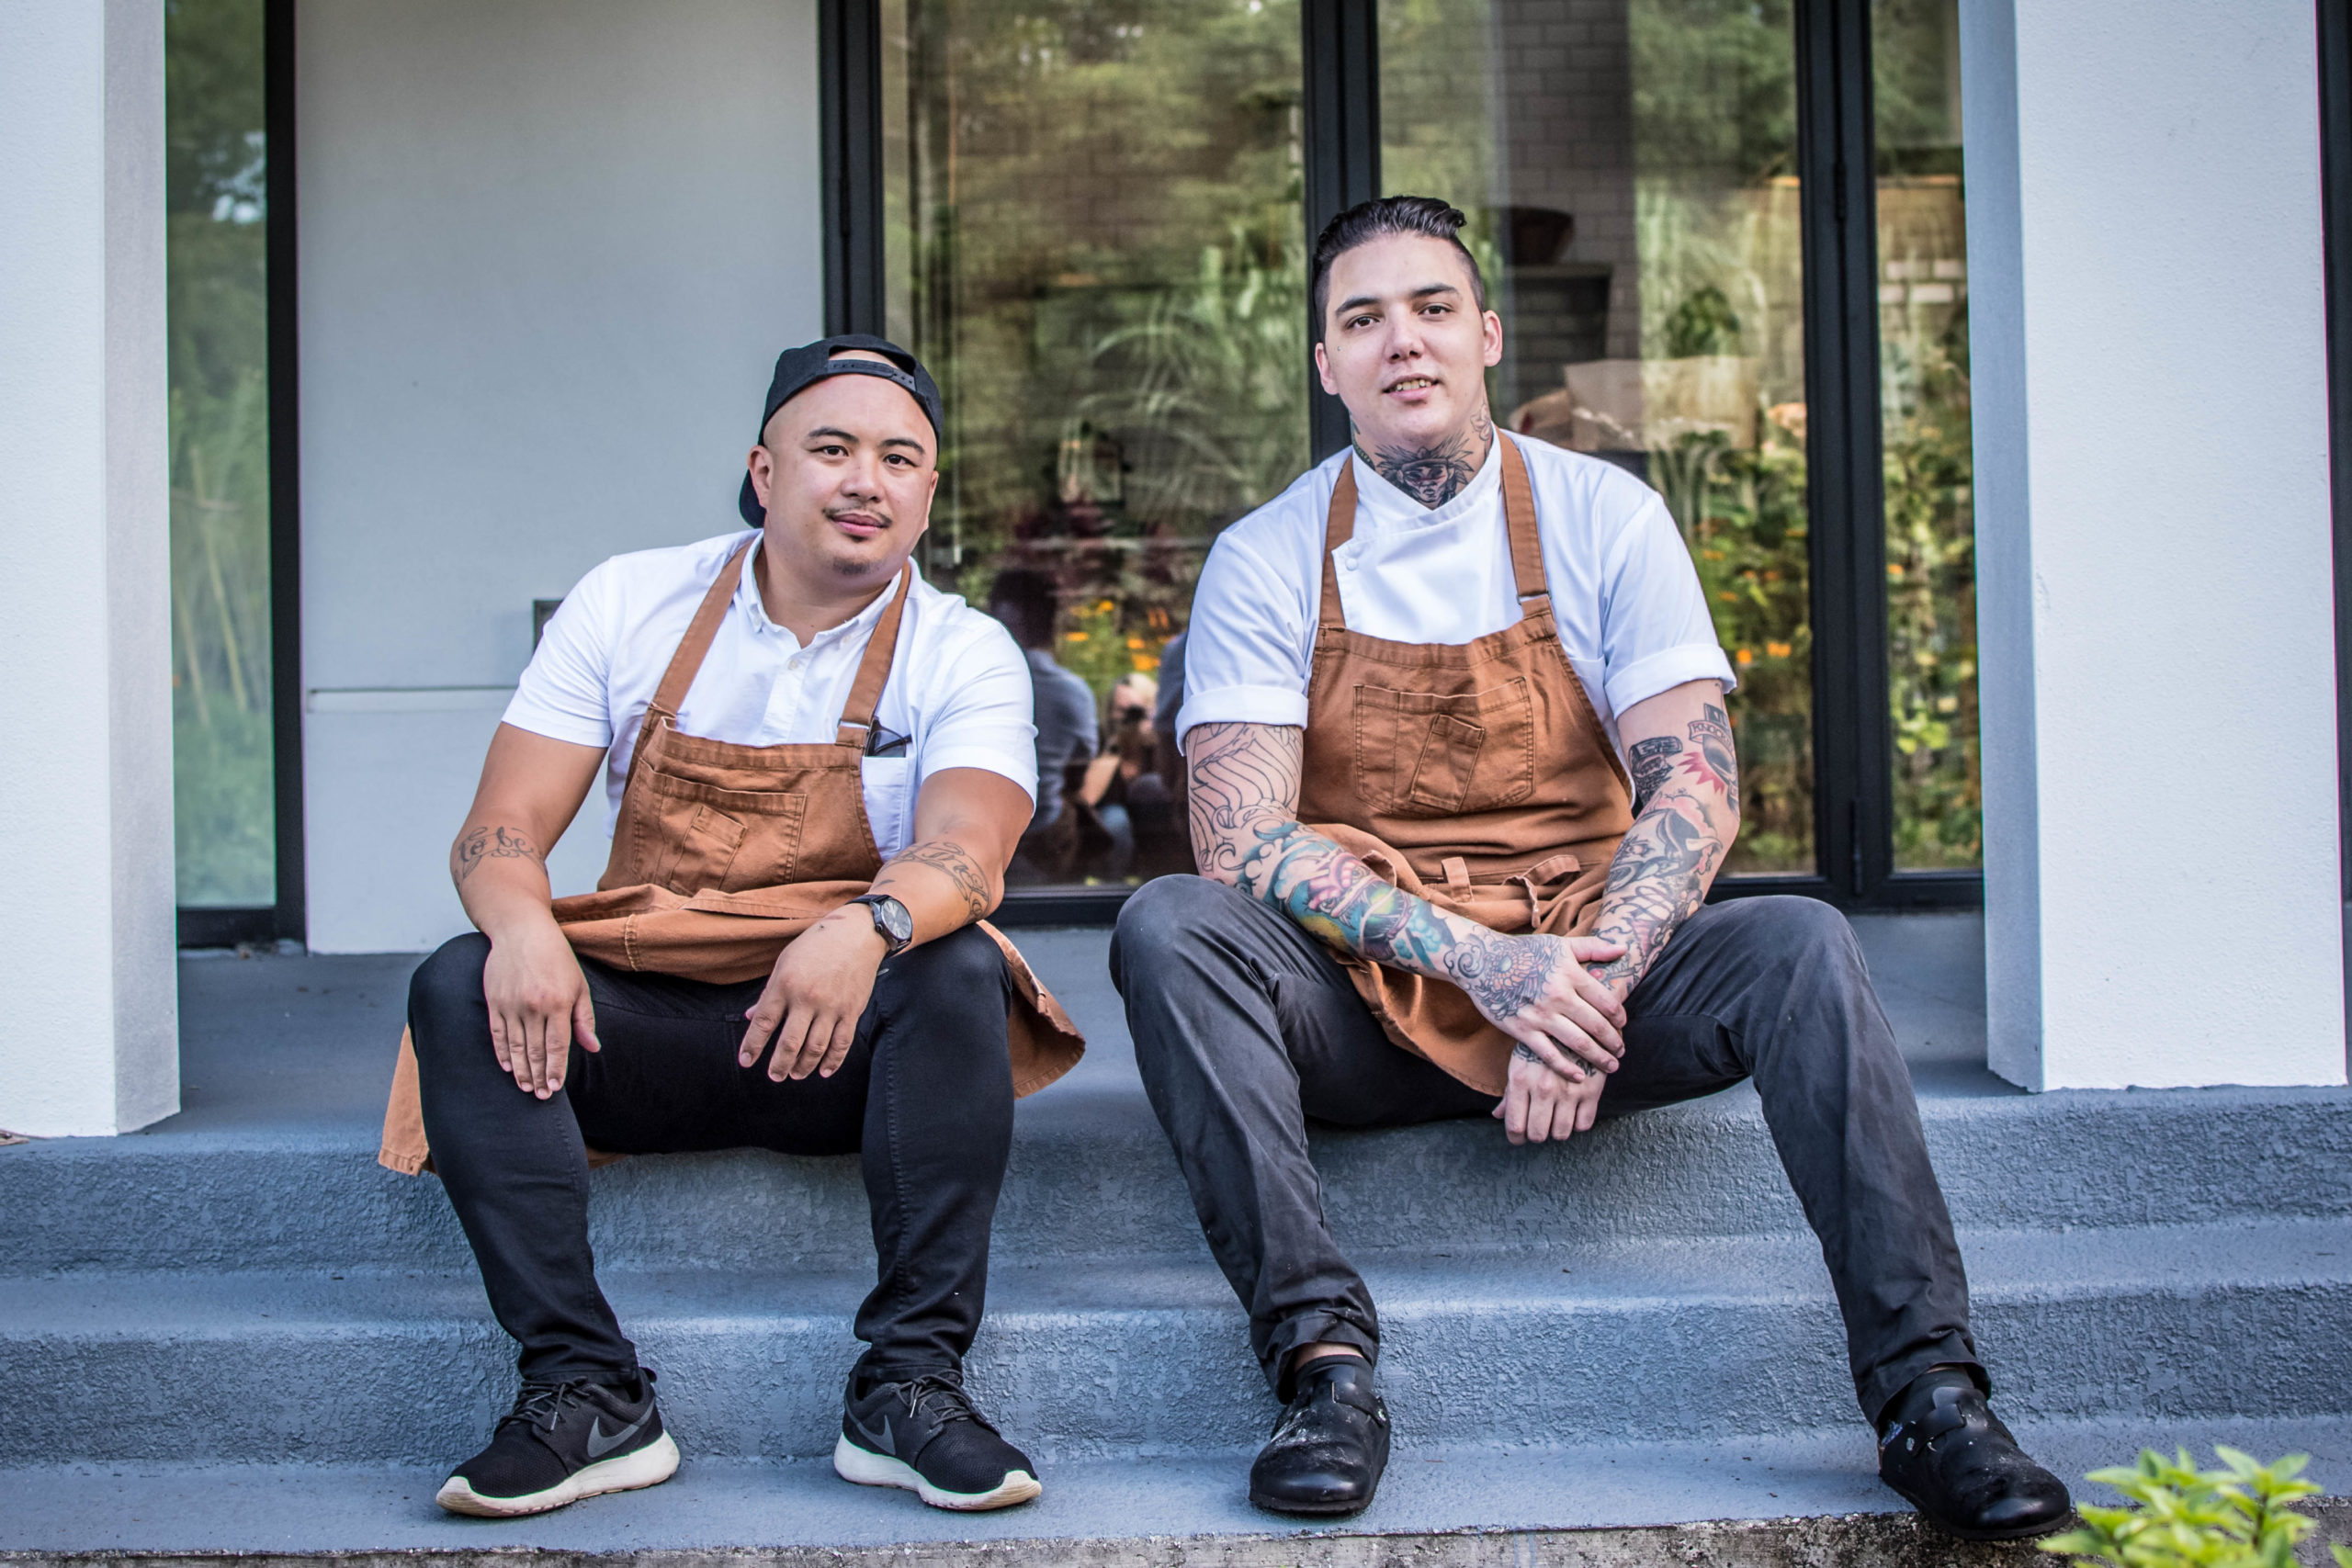 Chef Collantes and Chef Cha sit on steps outdoors in their aprons.